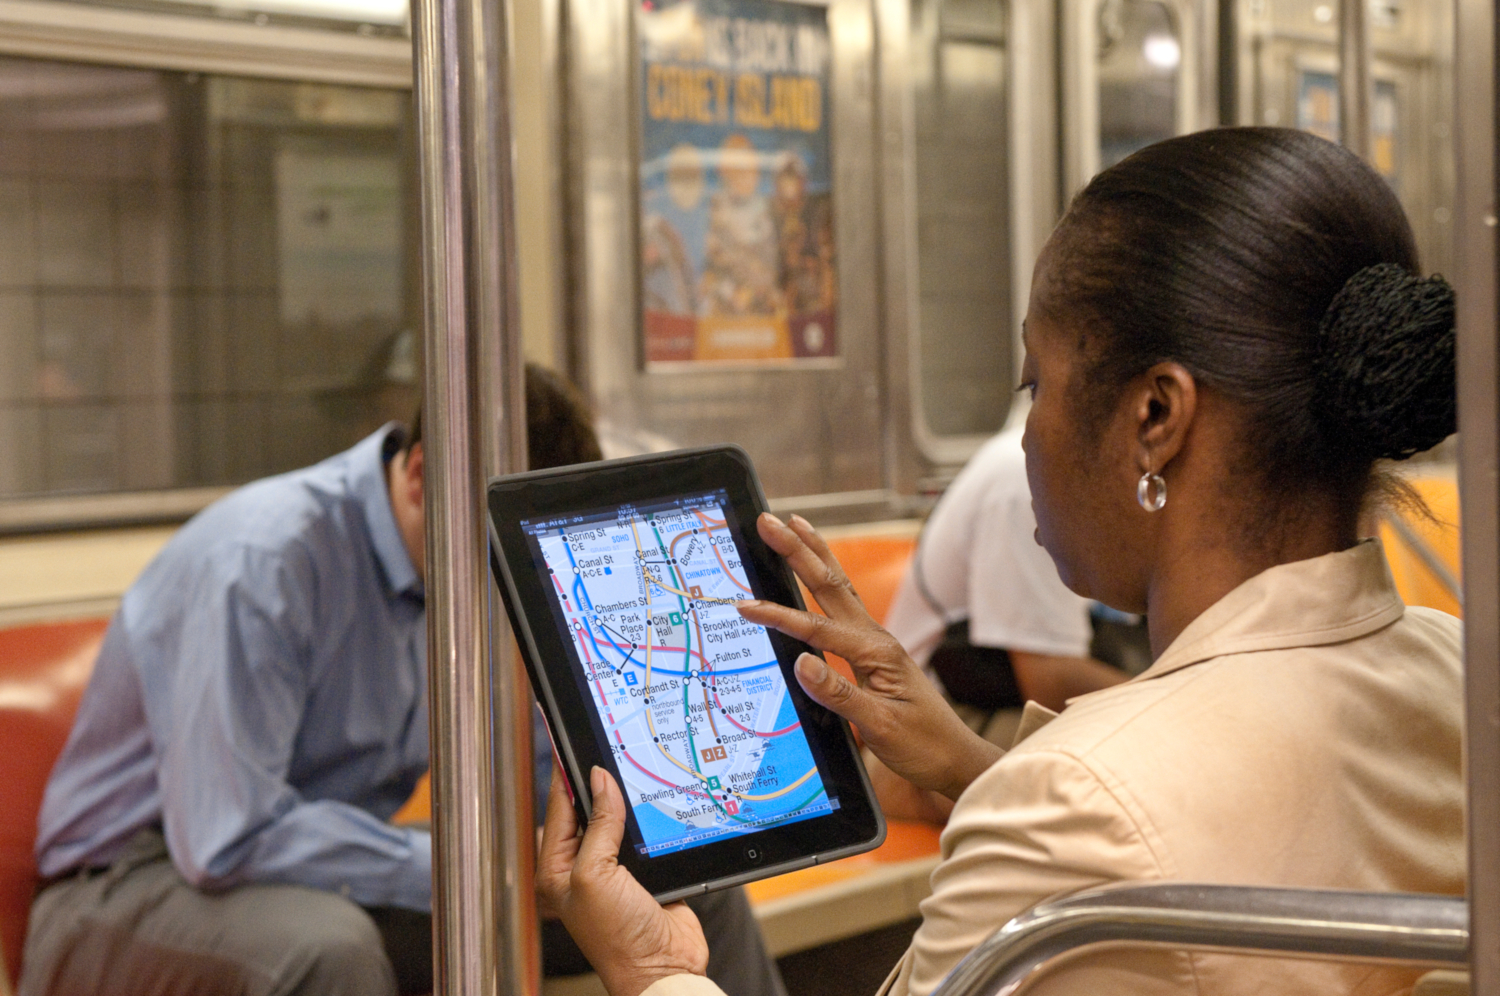 Software applications that increase access to information and improve the travel experience for customers of New York's subways, buses, railroads and bridges and tunnels. (credits: Metropolitan Transportation Authority / Patrick Cashin / Flickr Creative Commons Attribution 2.0 Generic (CC BY 2.0))